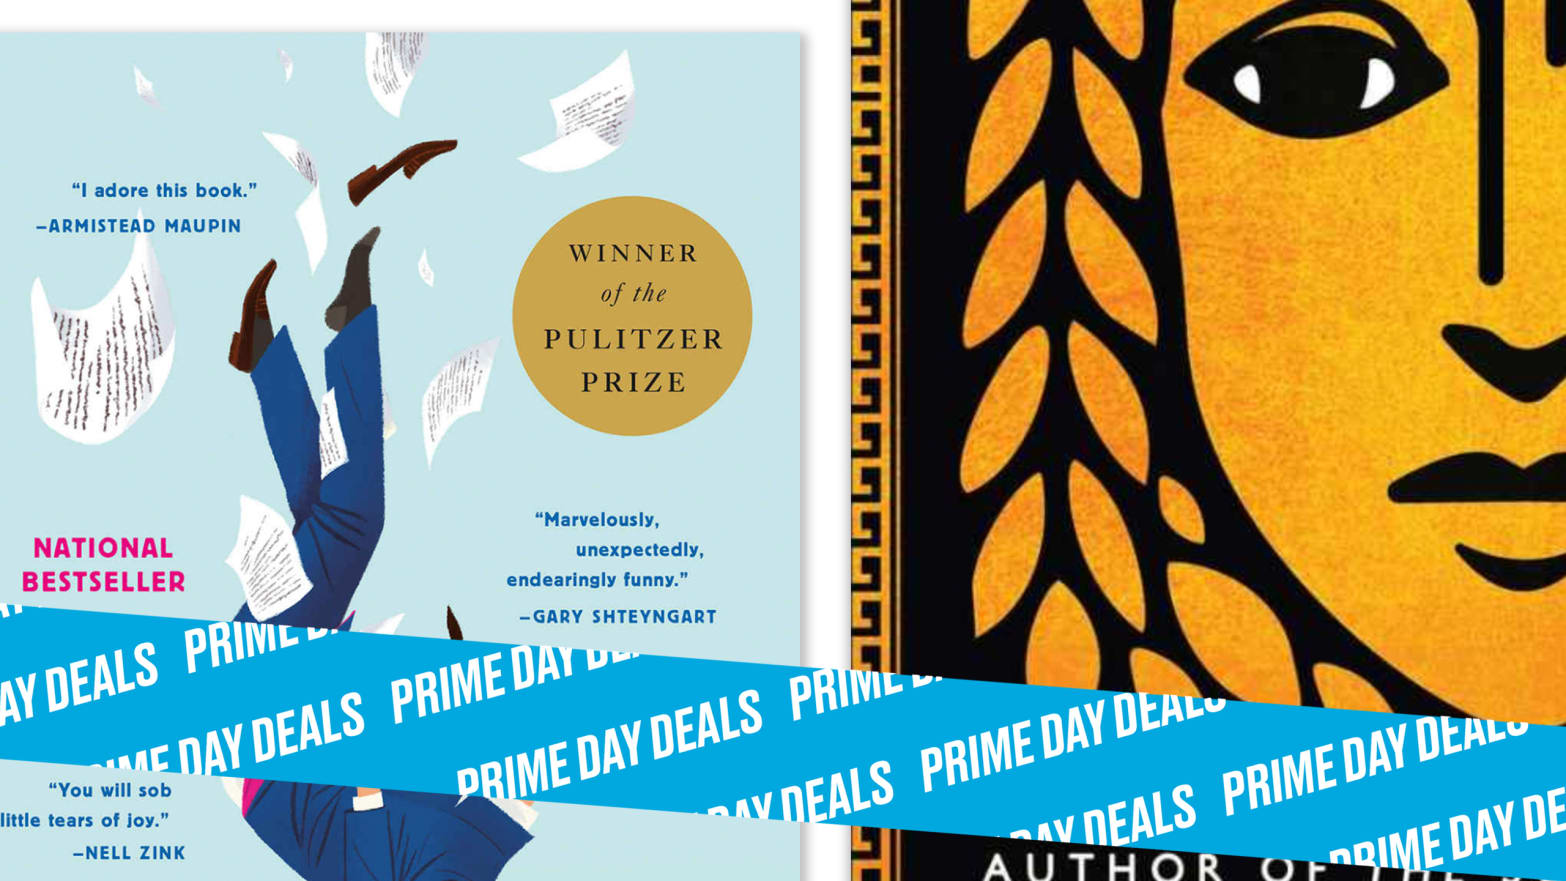 Save Up to 80% on Amazon Best-Selling Kindle Books